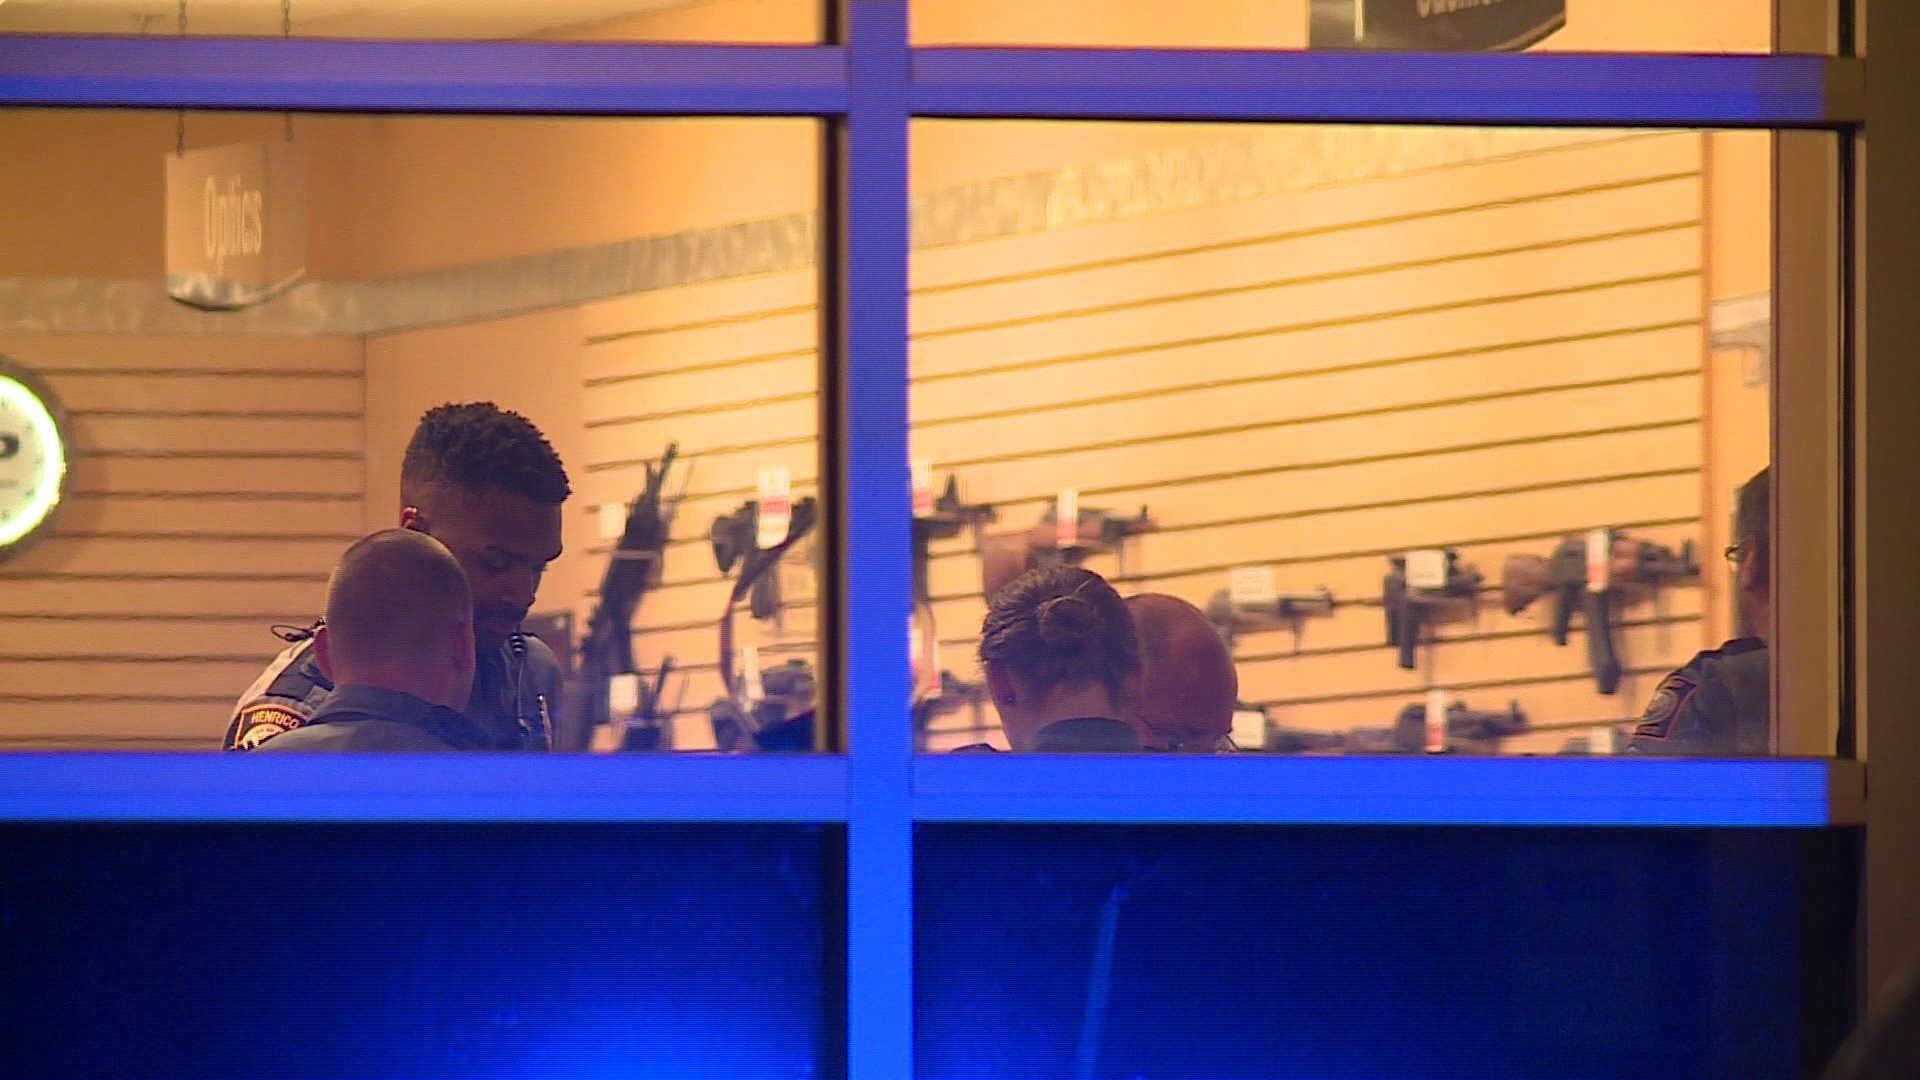 Photos: Man arrested at Colonial Shooting Academy inHenrico